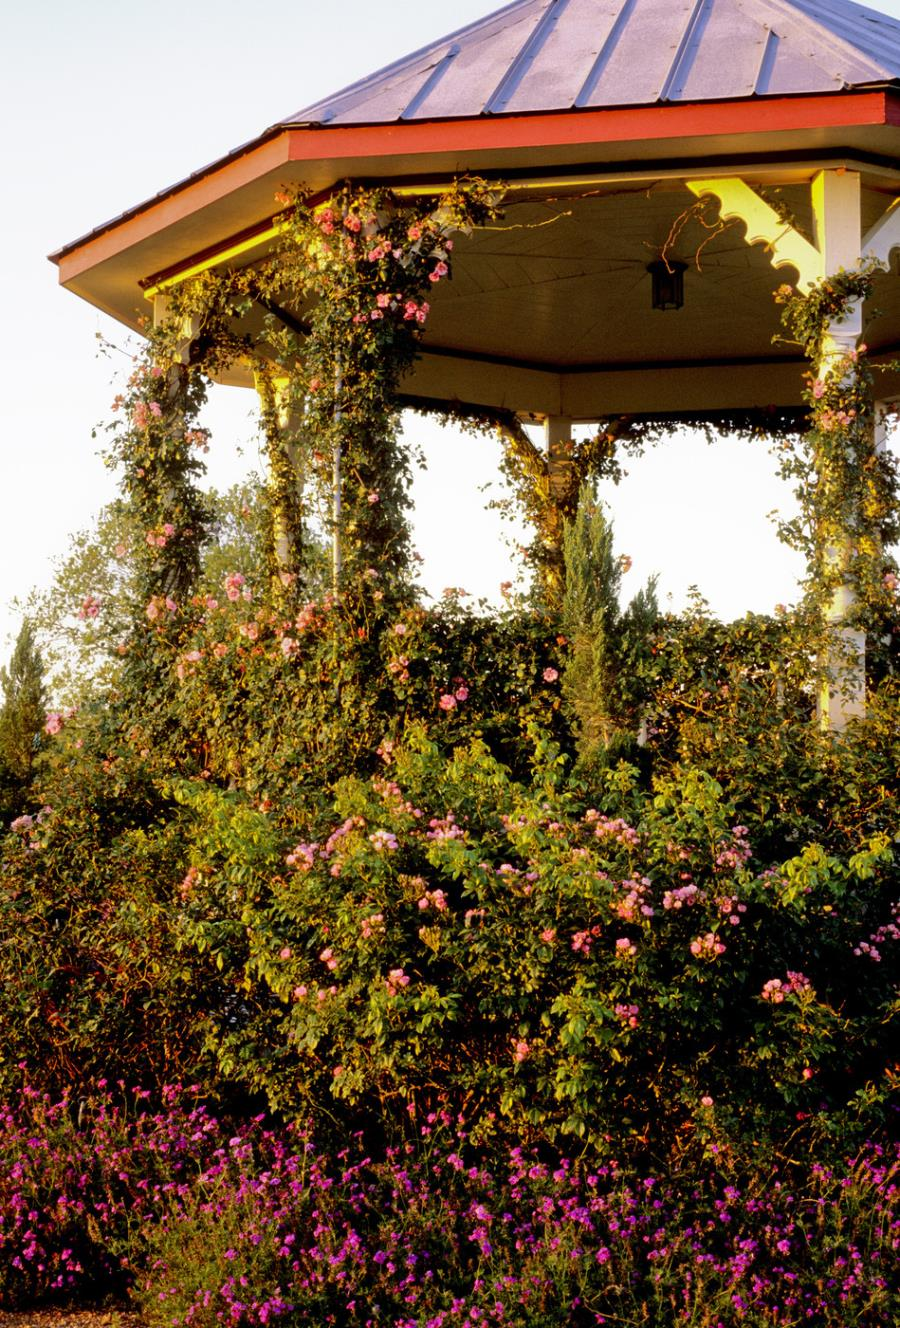 Lovely gazebo with climbing vines